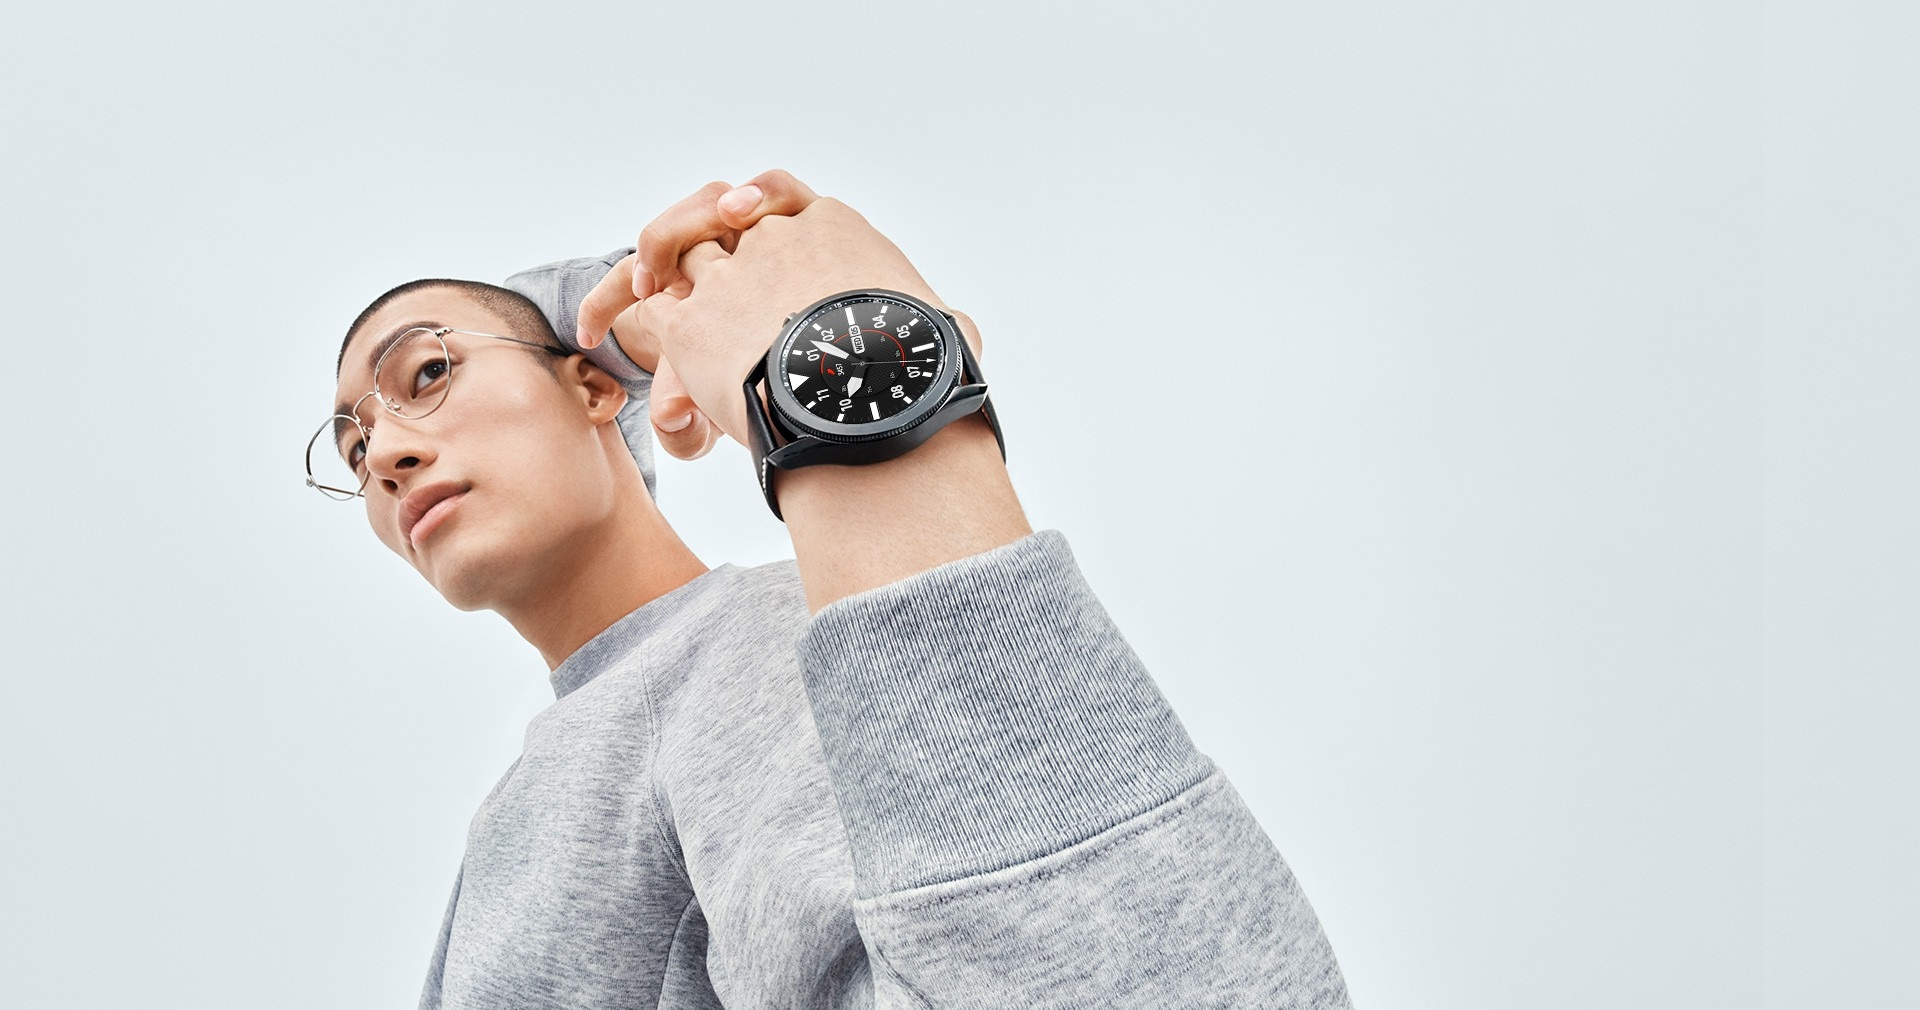 Man stretches his arms behind his back, showing off a 45mm Galaxy Watch3 in Mystic Black on his wrist with a Sporty Classic Watch Face.